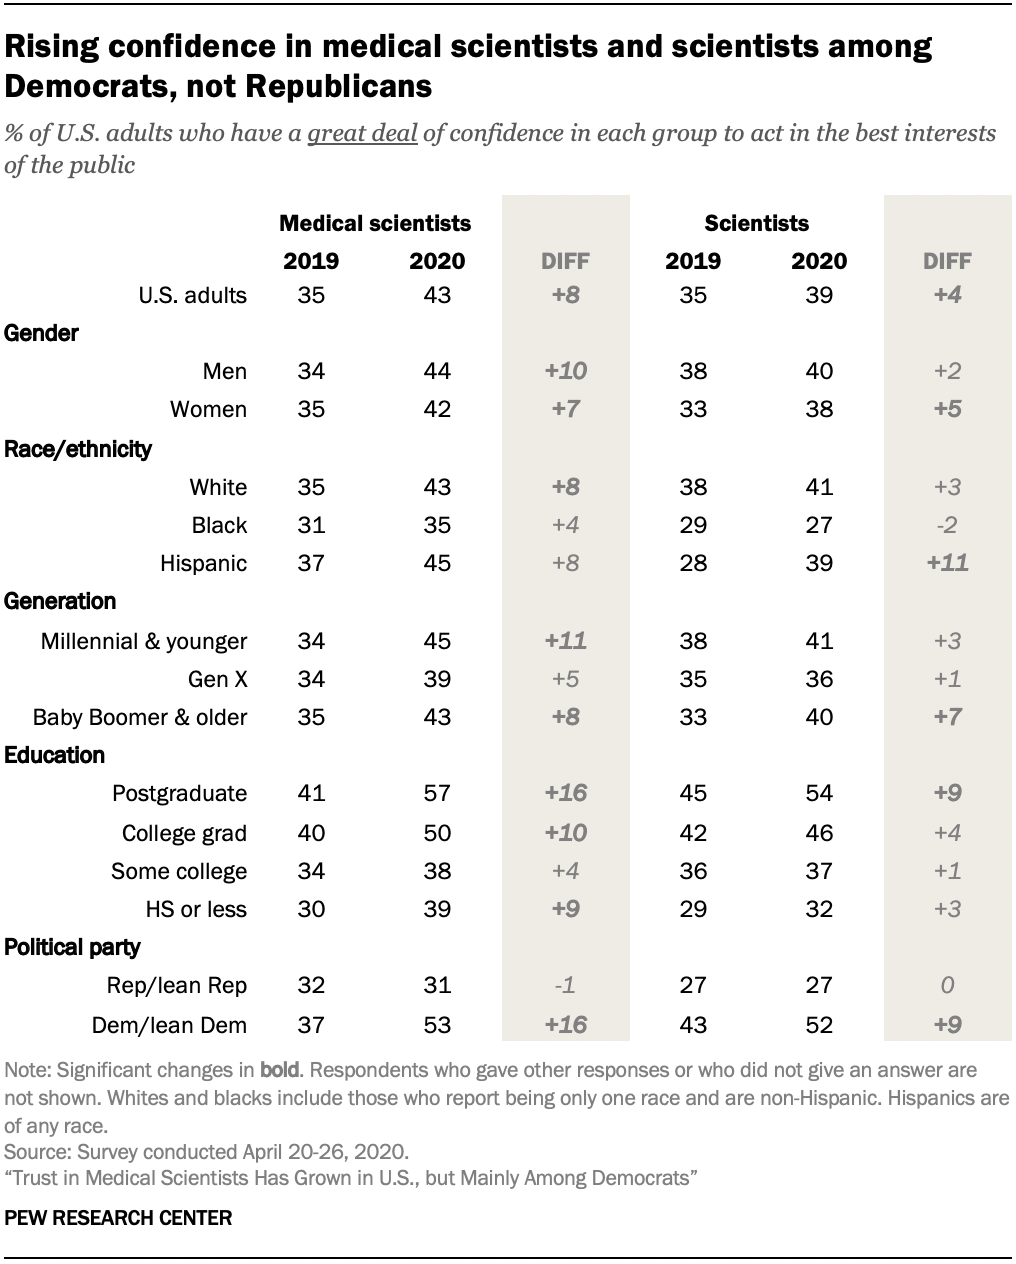 Rising confidence in medical scientists and scientists among Democrats, not Republicans